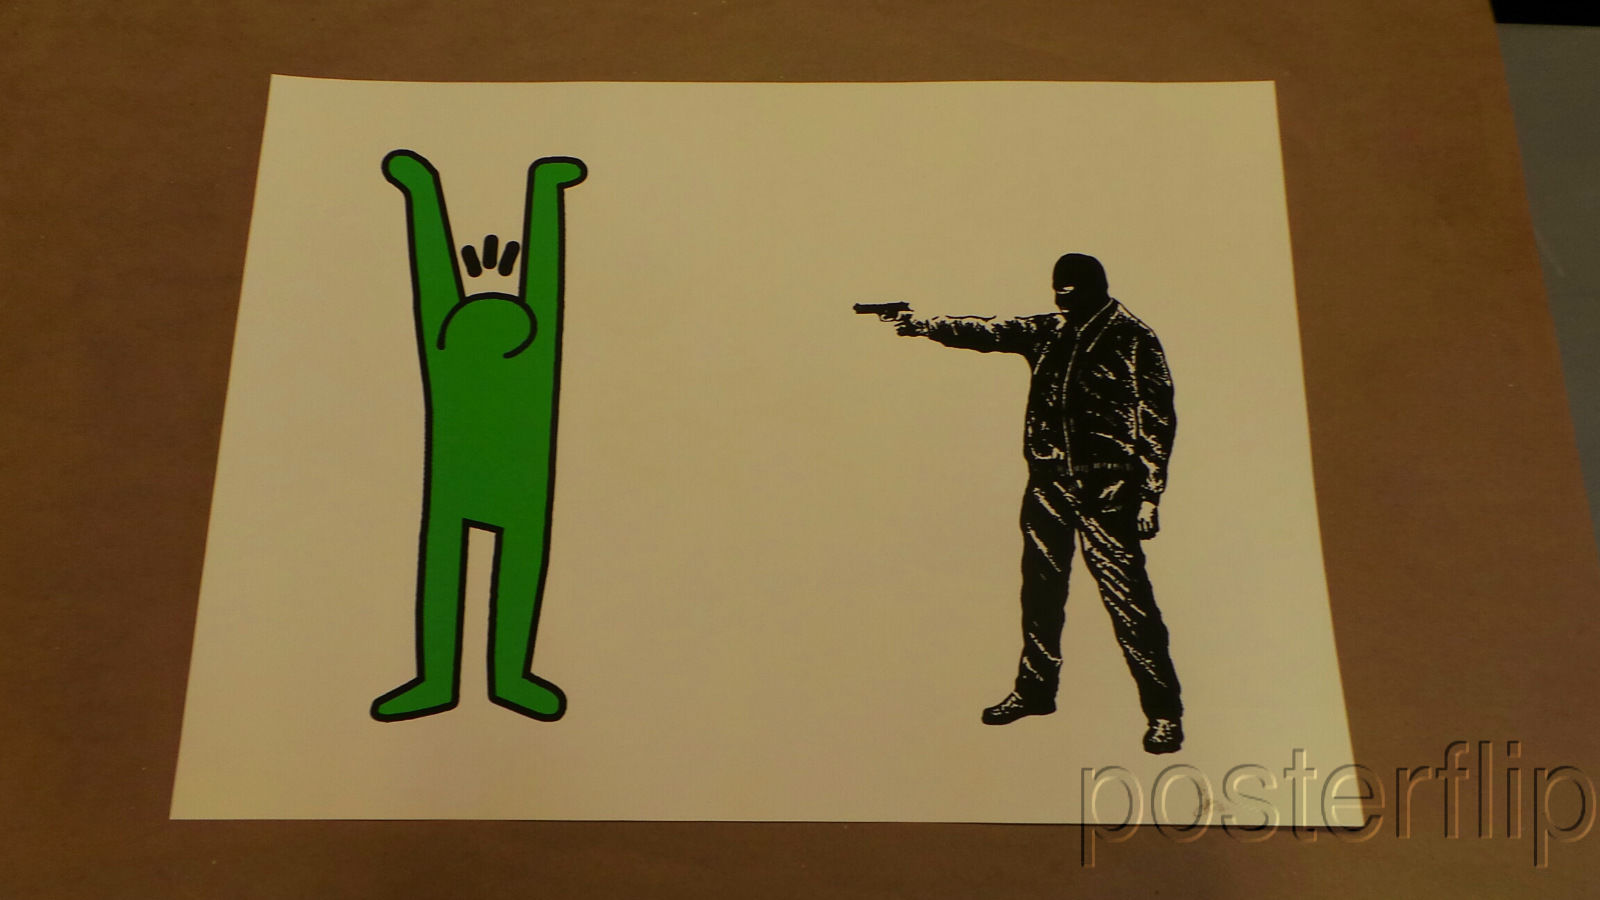 You Haring a Laugh? Green Screen Print Poster xx/6 S/N'd Lewis Bannister